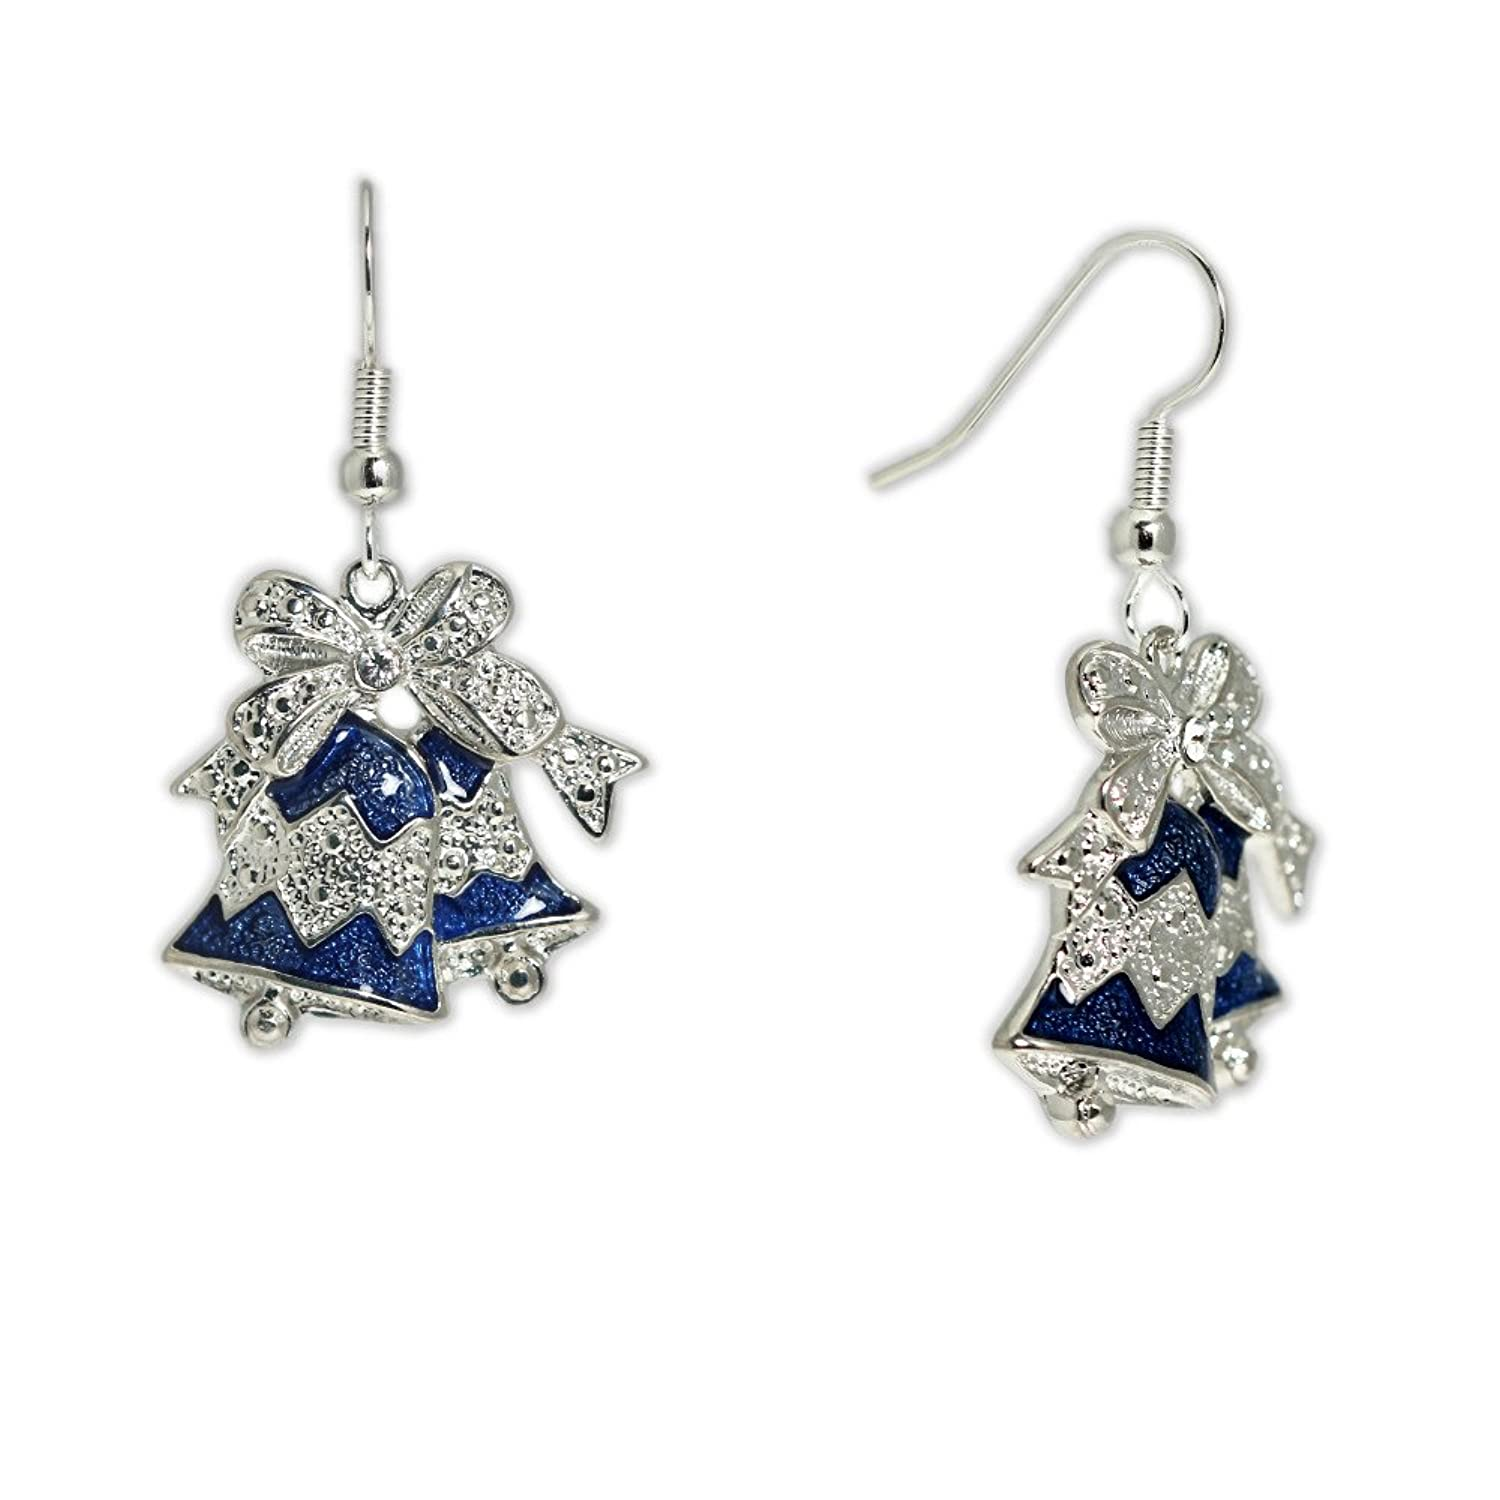 Blue Bells Topped w/ Bow & Clear Crystal Earrings in Silver Tone, Christmas